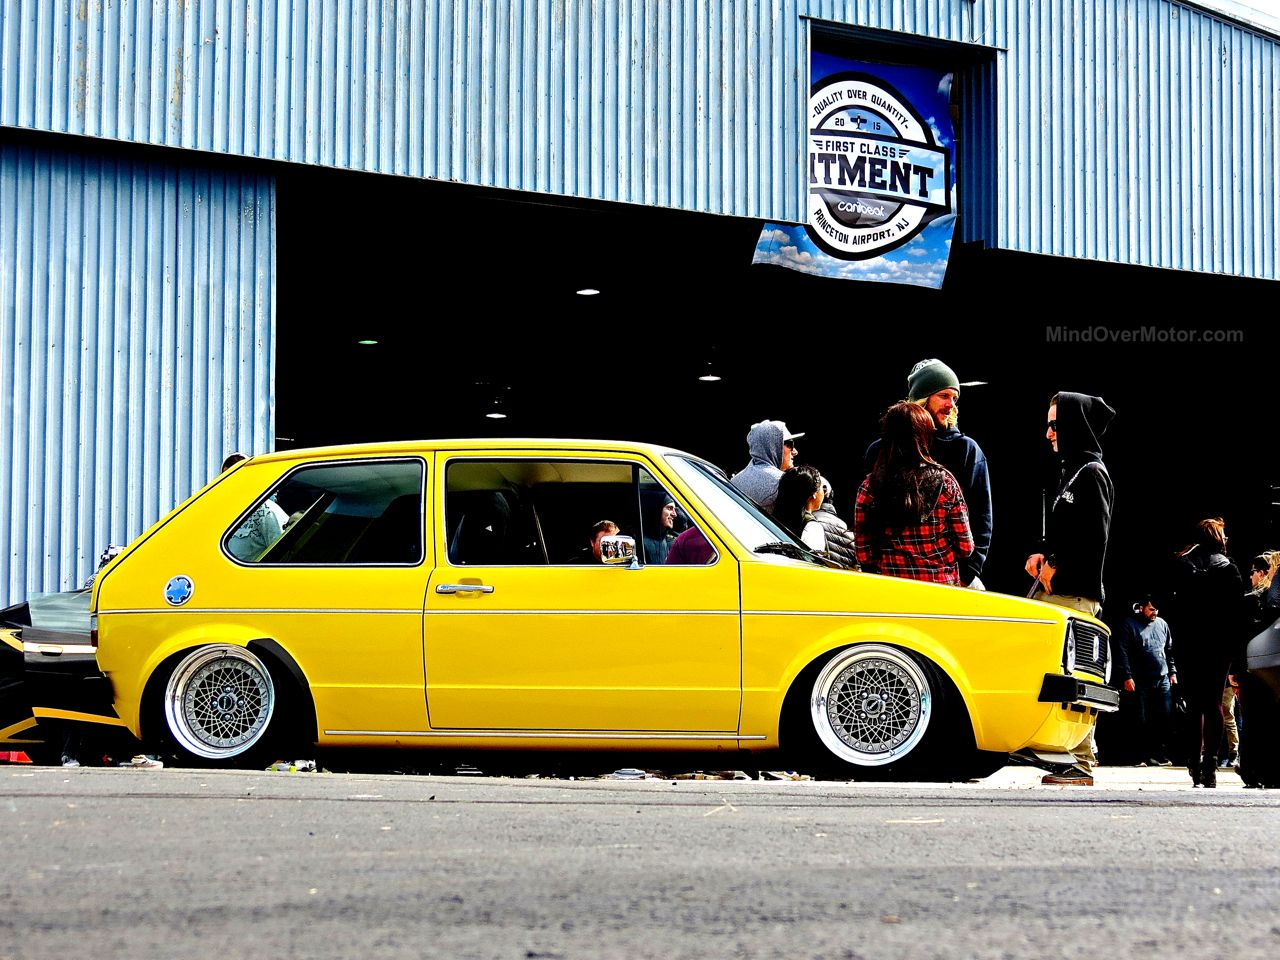 First Class Fitment Volkswagen Mk1 Golf Slammed